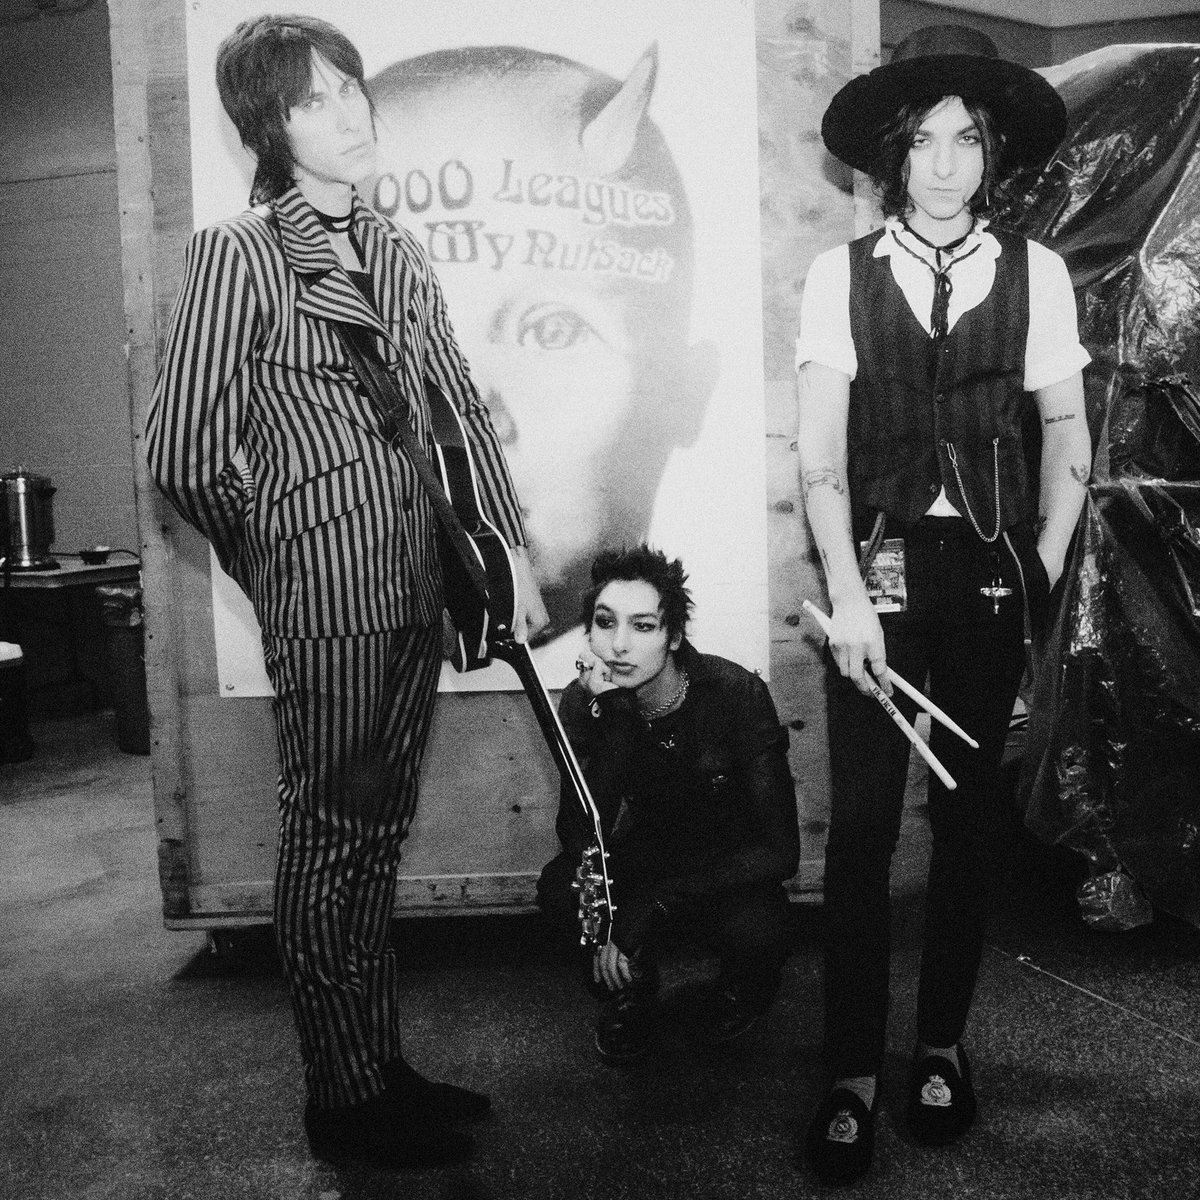 Palaye Royale On Twitter Twins Of Evil Marilyn Manson Rob Zombie With Support From These Three Lost Boys